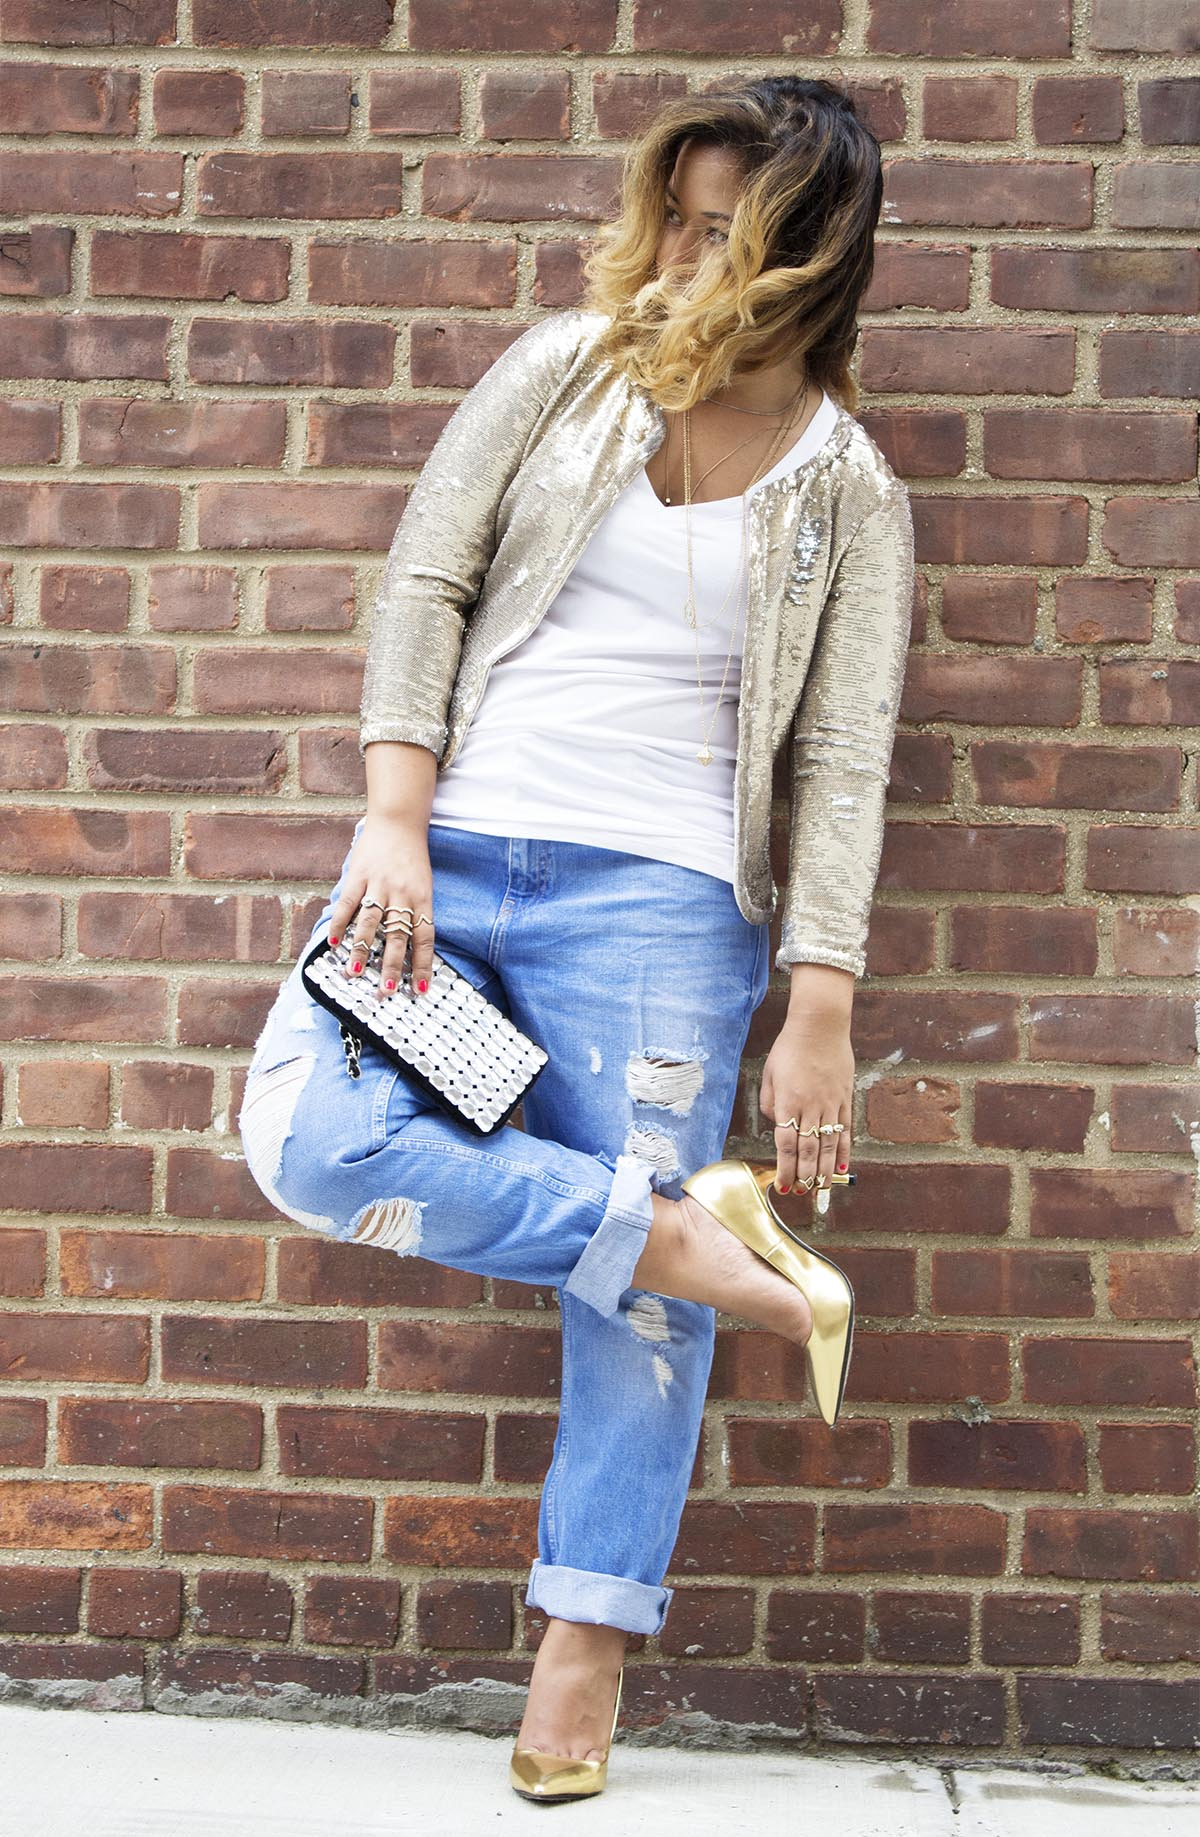 Sequin Jacket & Ripped Jeans 5.jpg